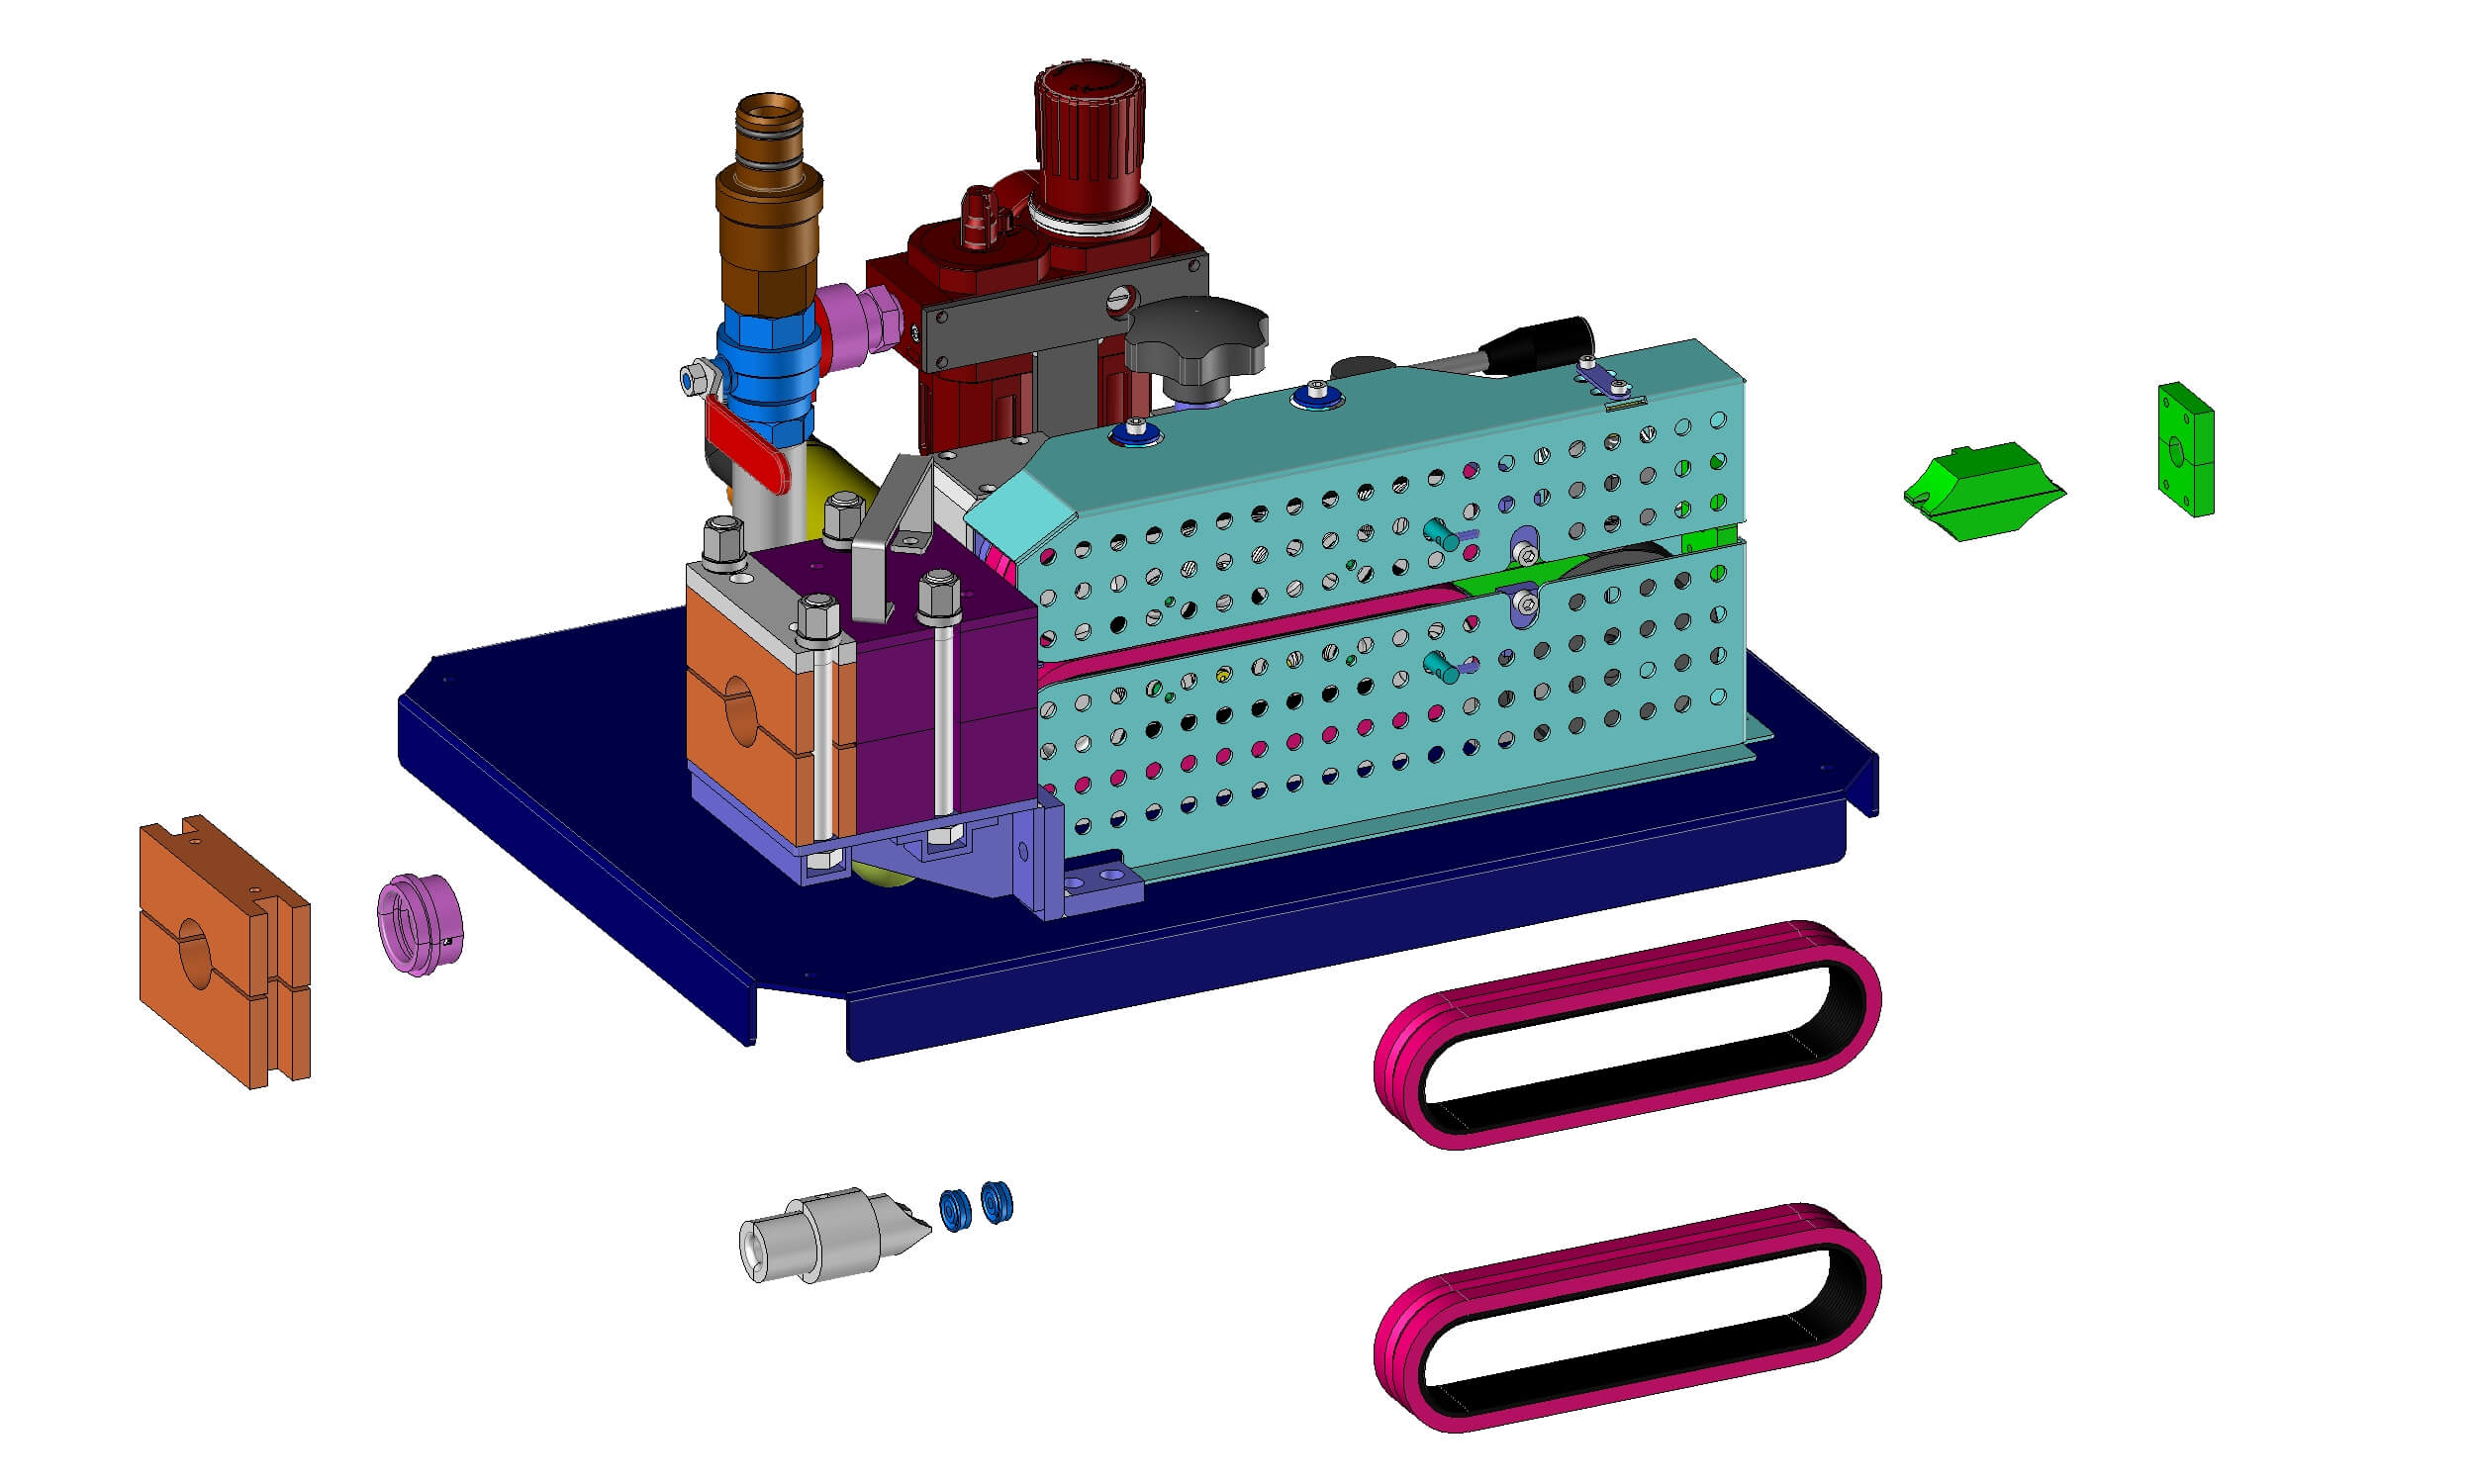 Mini-FOK Cable Blowing Machine Exploded View